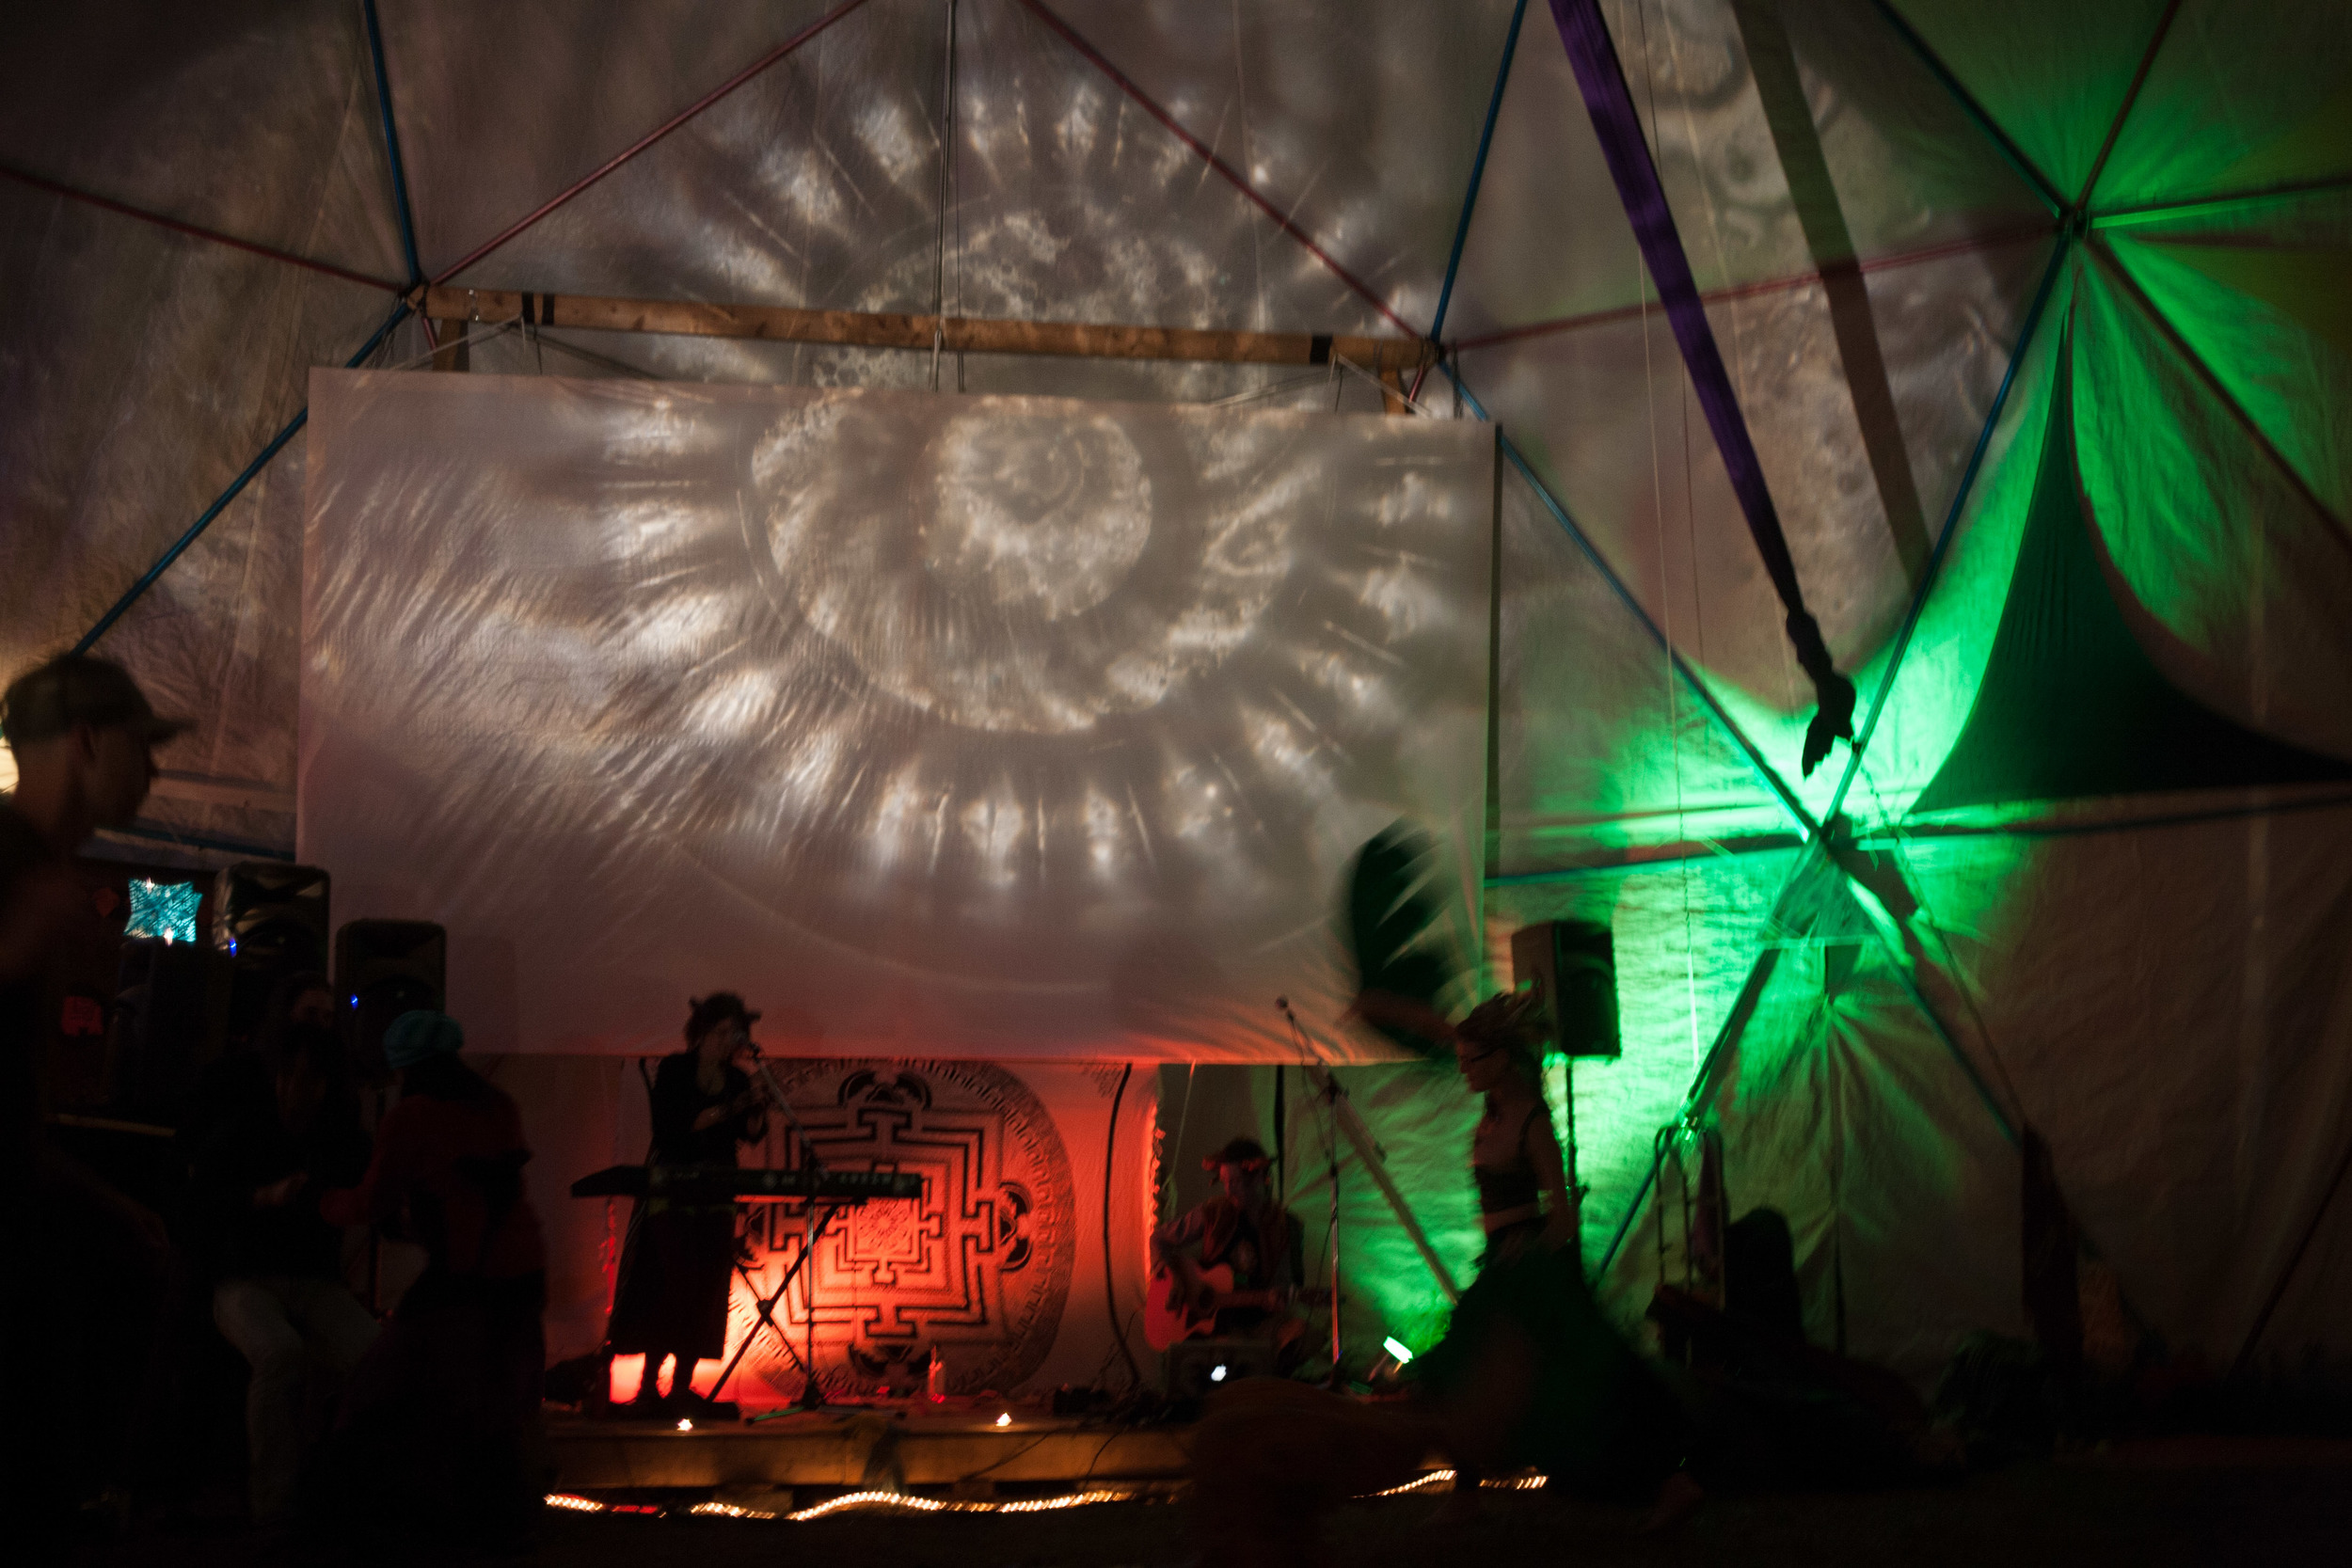 Ky∆zMa live at Solstice 2014 (Om Reunion Project). 2